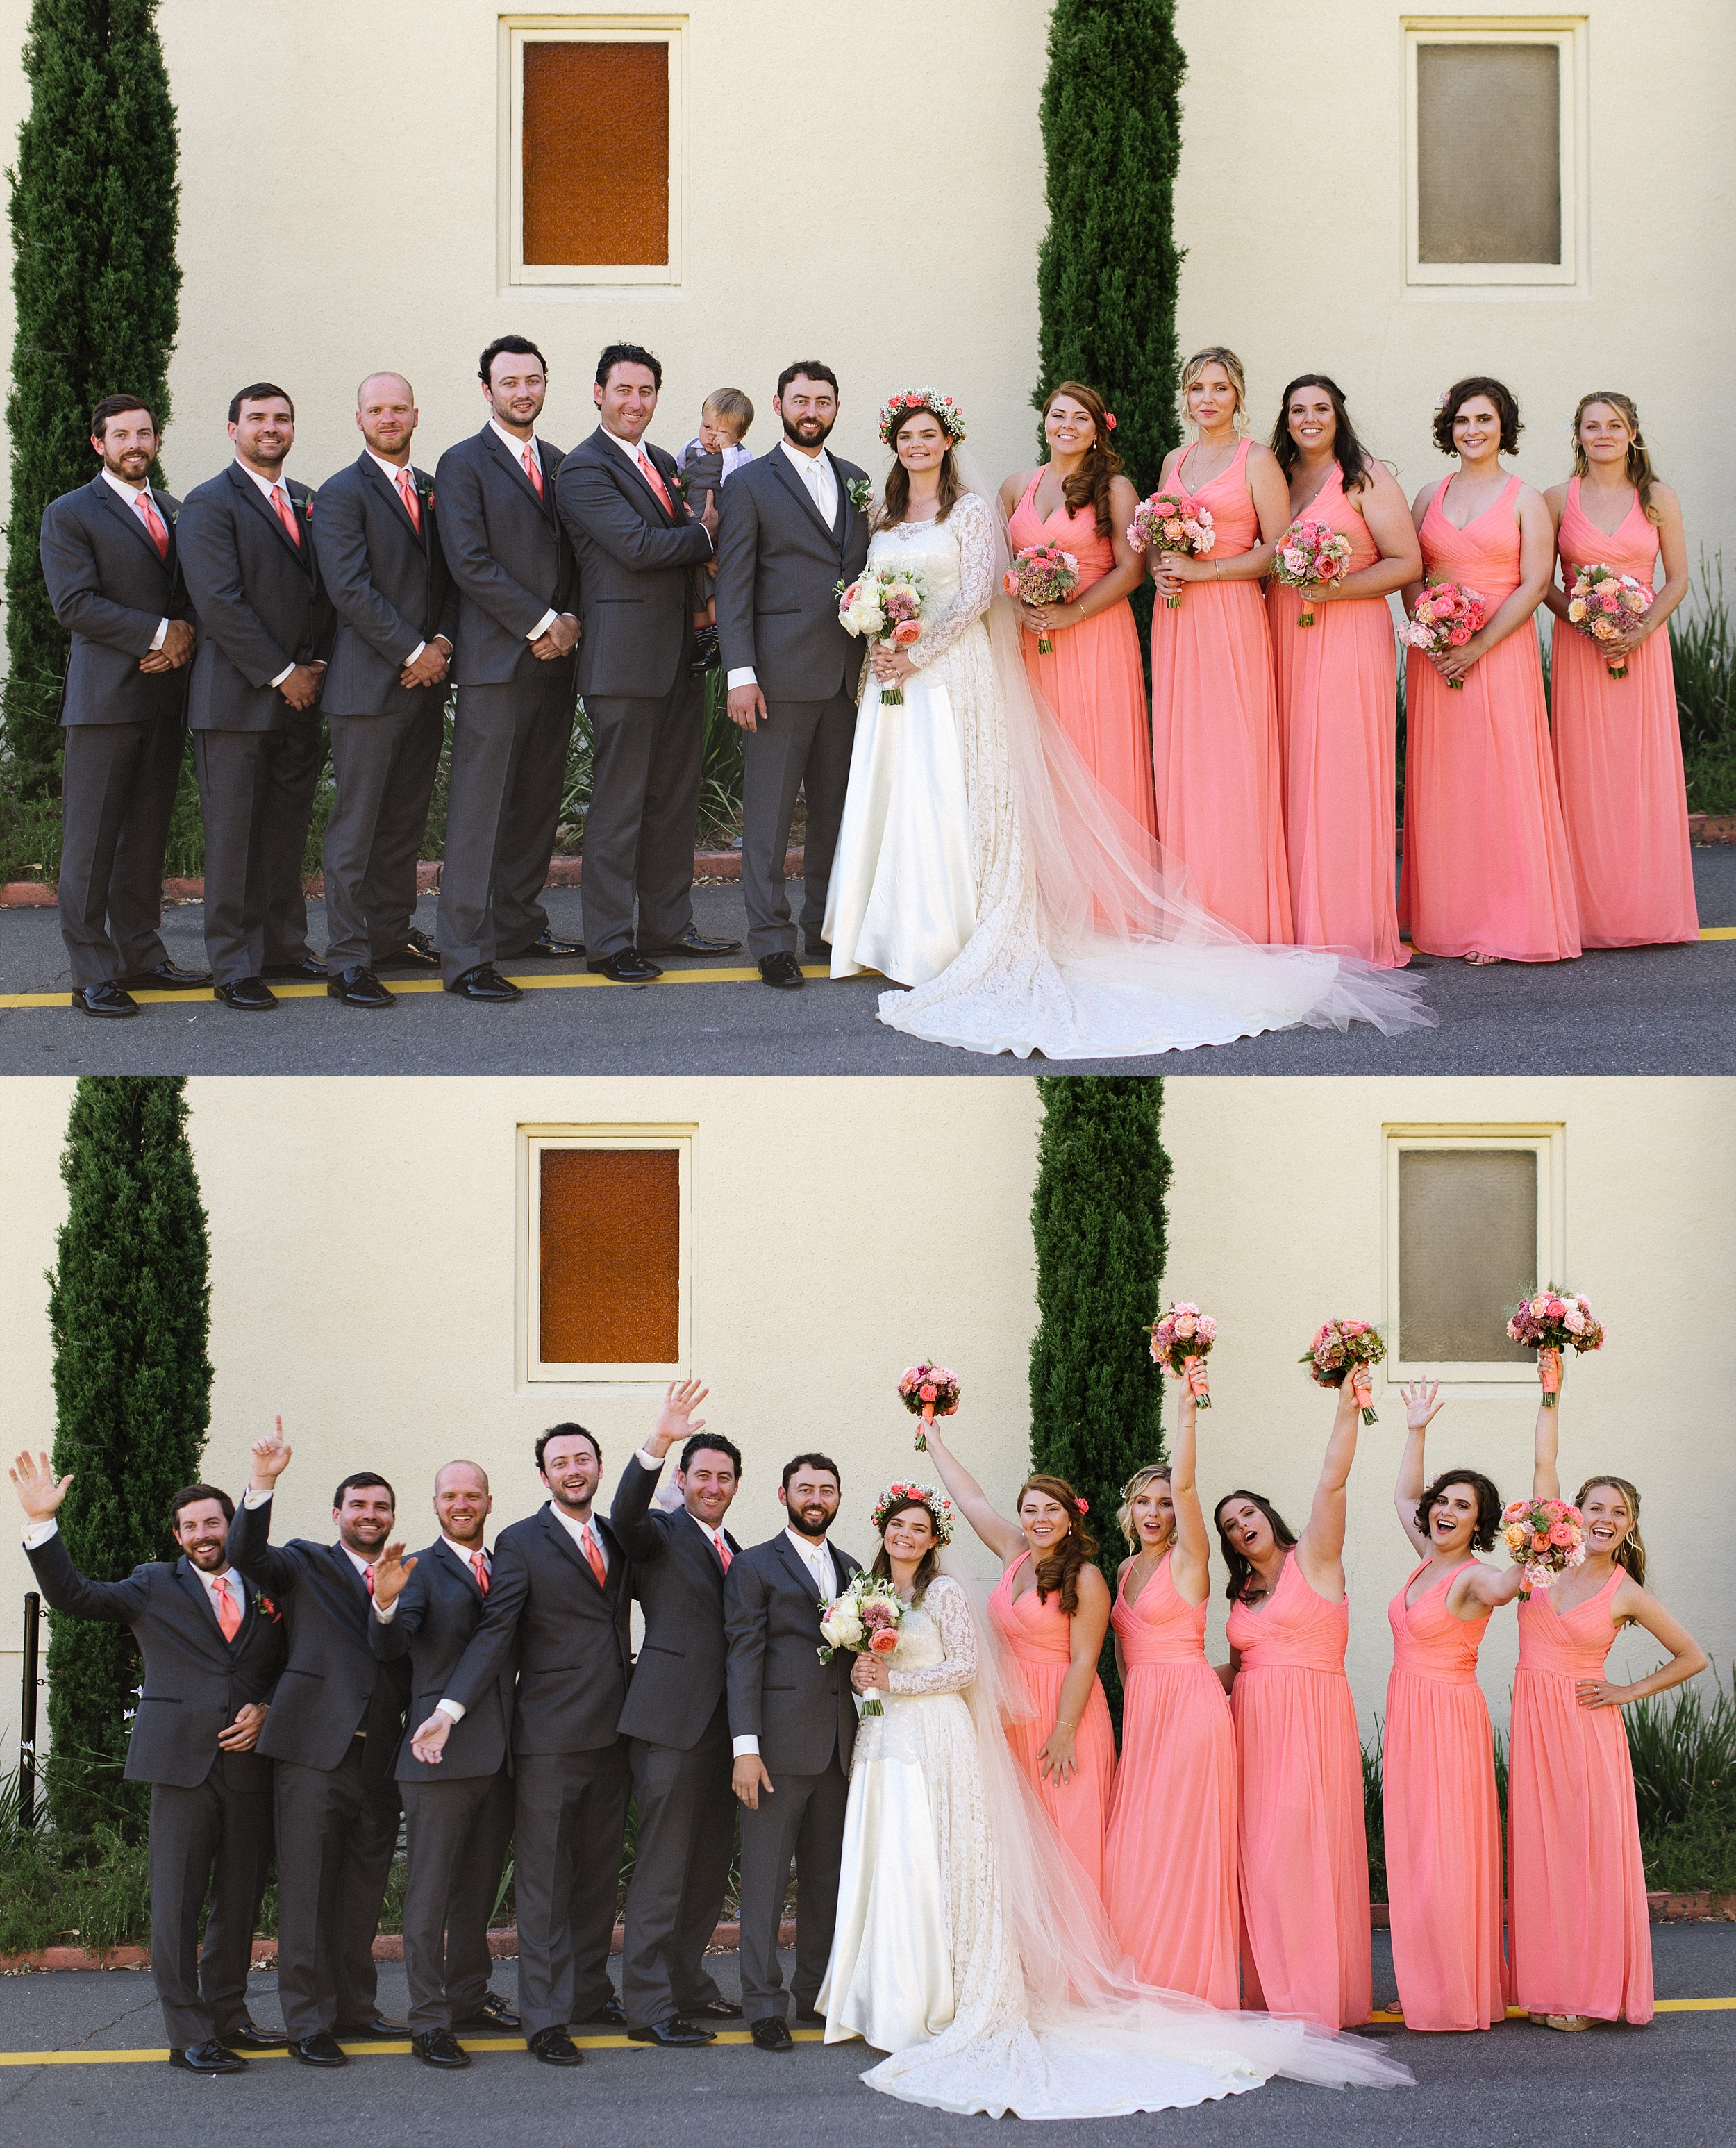 fairfax_ranch_wedding_chelsea_dier_photography_0022.jpg